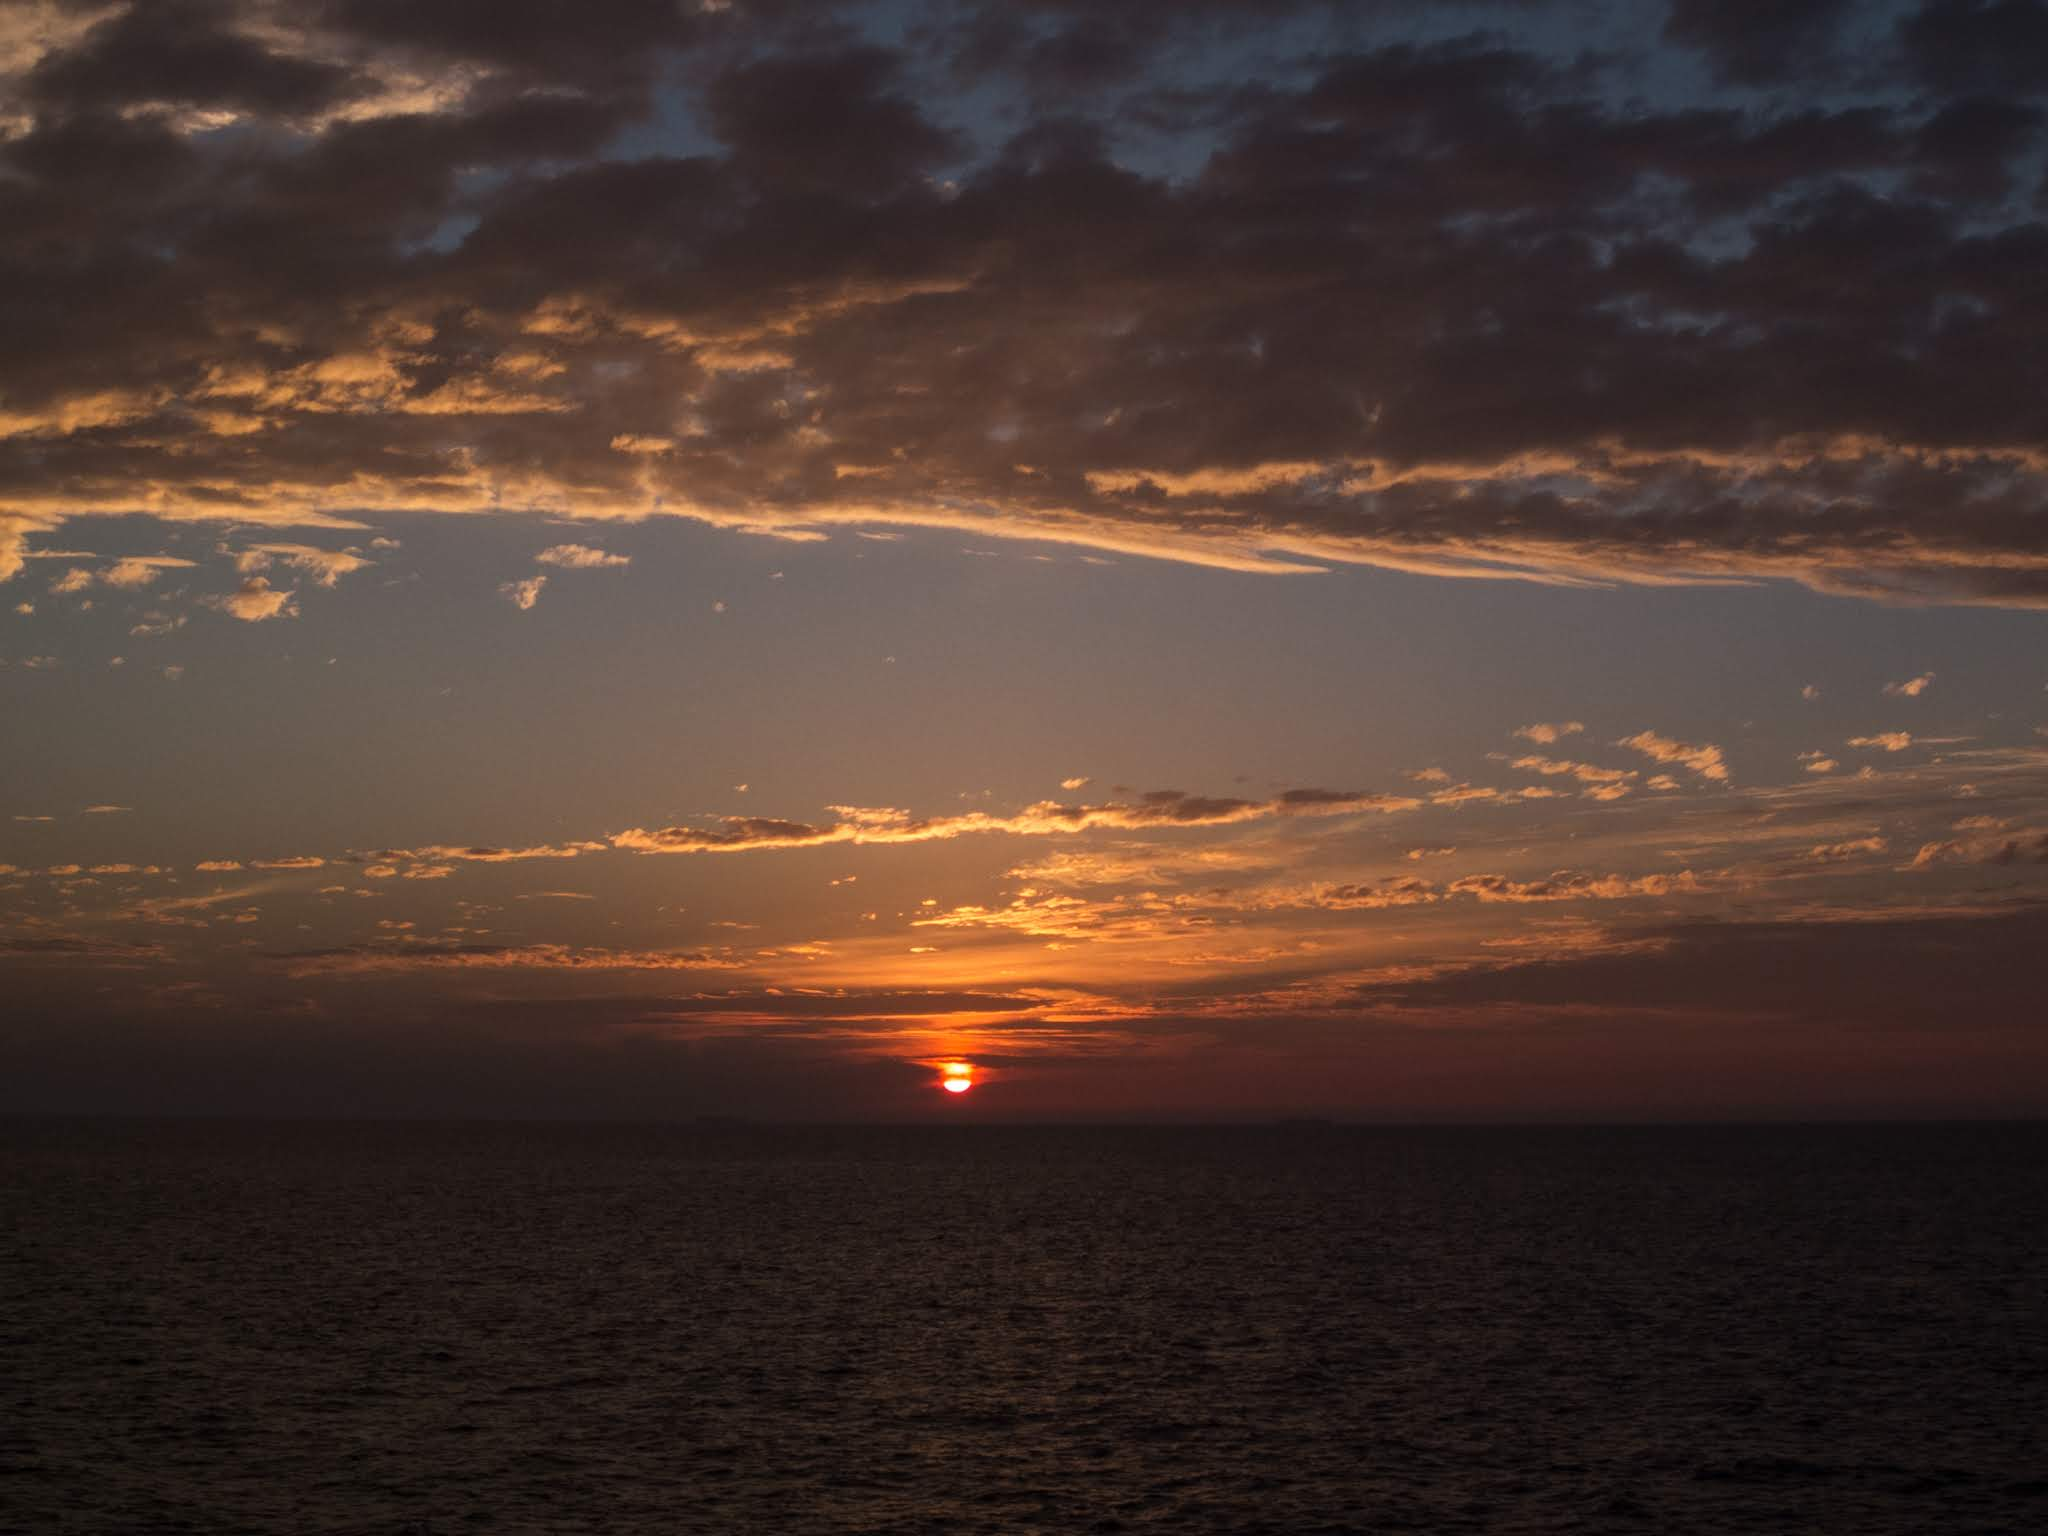 Sunset cloud landscape of the Atlantic Ocean off the coast of Portugal.